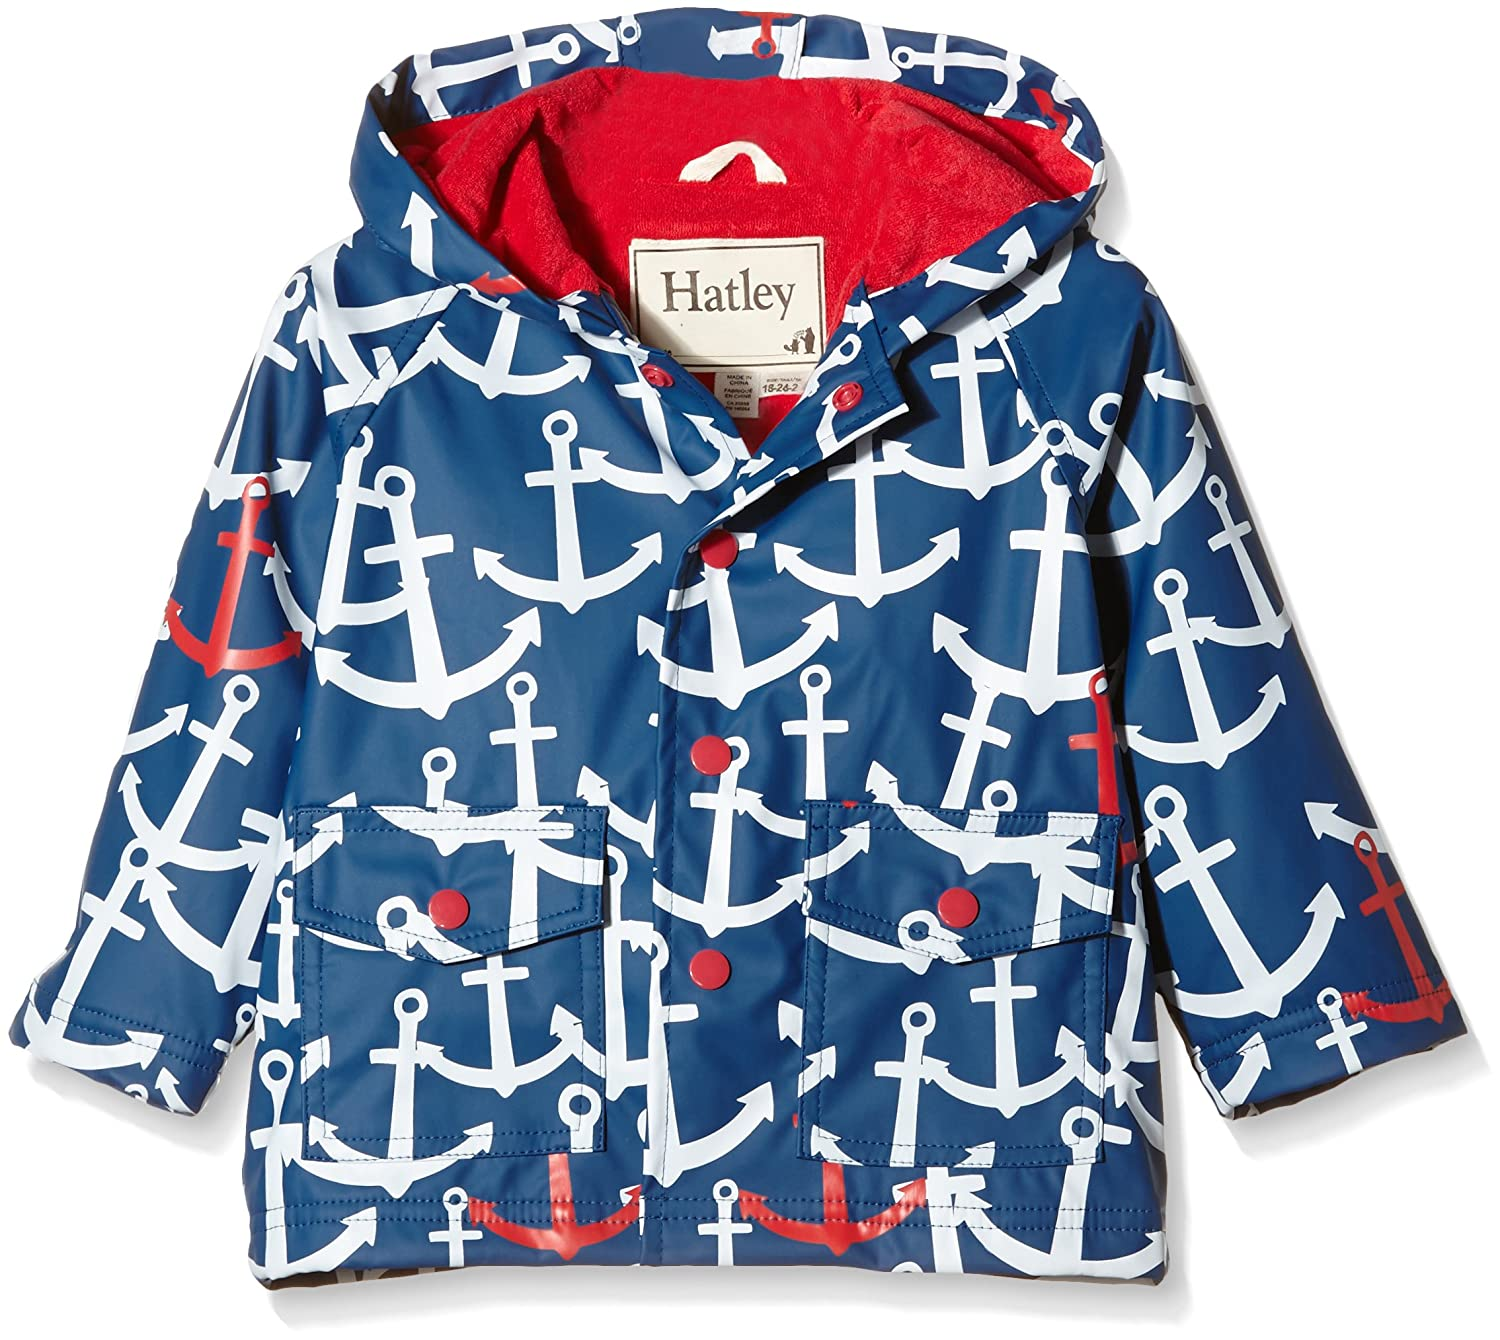 48a17fb8d Hatley Baby Scattered Anchors Infant Raincoat